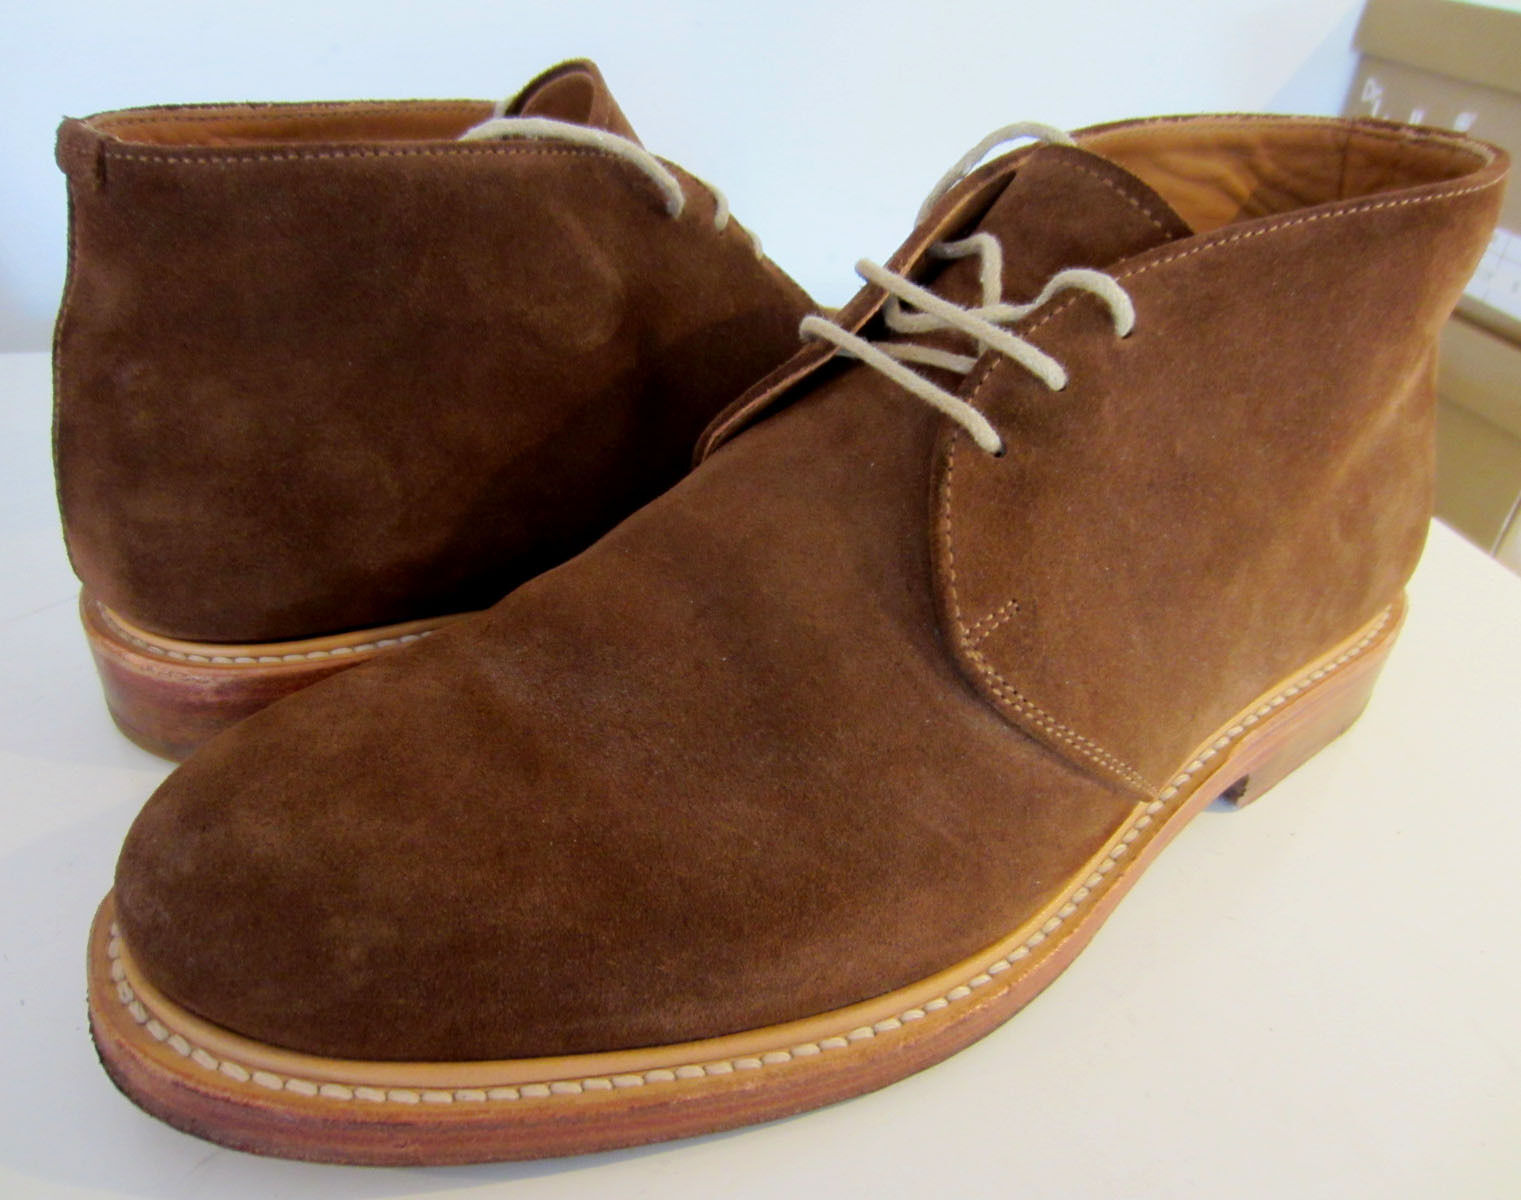 Russell Boots & Bromley hand made chocolate brown suede chukka Boots Russell UK 6 EU 38.5 34ddae